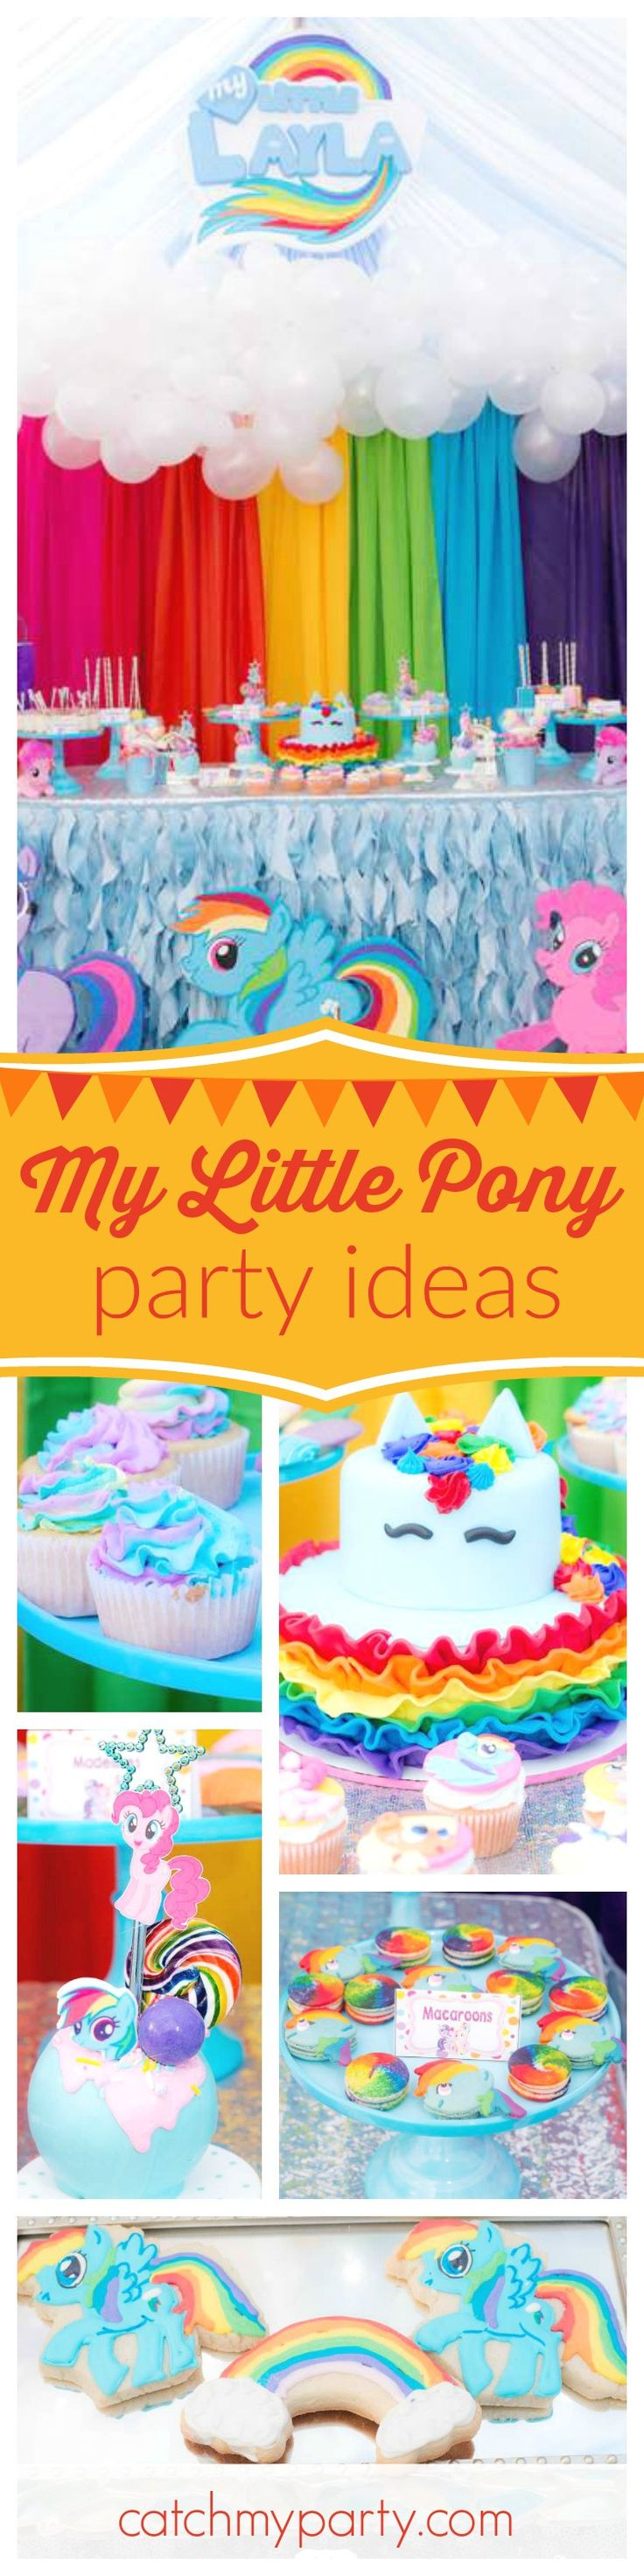 Don't miss this colorful My Little Pony birthday party! The Rainbow Dash birthday cake is adorable!! See more party ideas and share yours at CatchMyParty.com